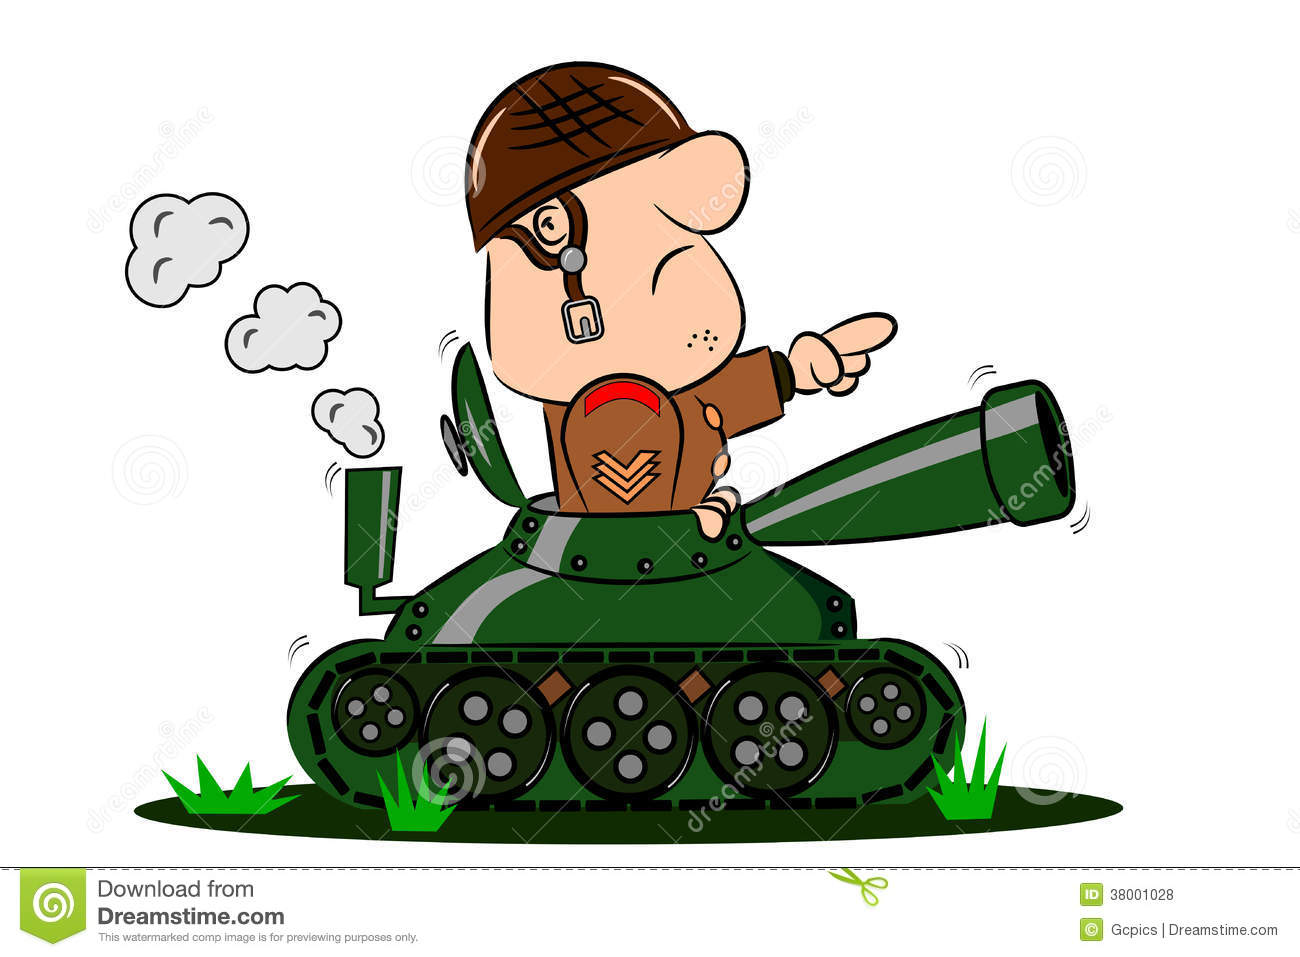 69 Likable Cartoon Soldier Images.